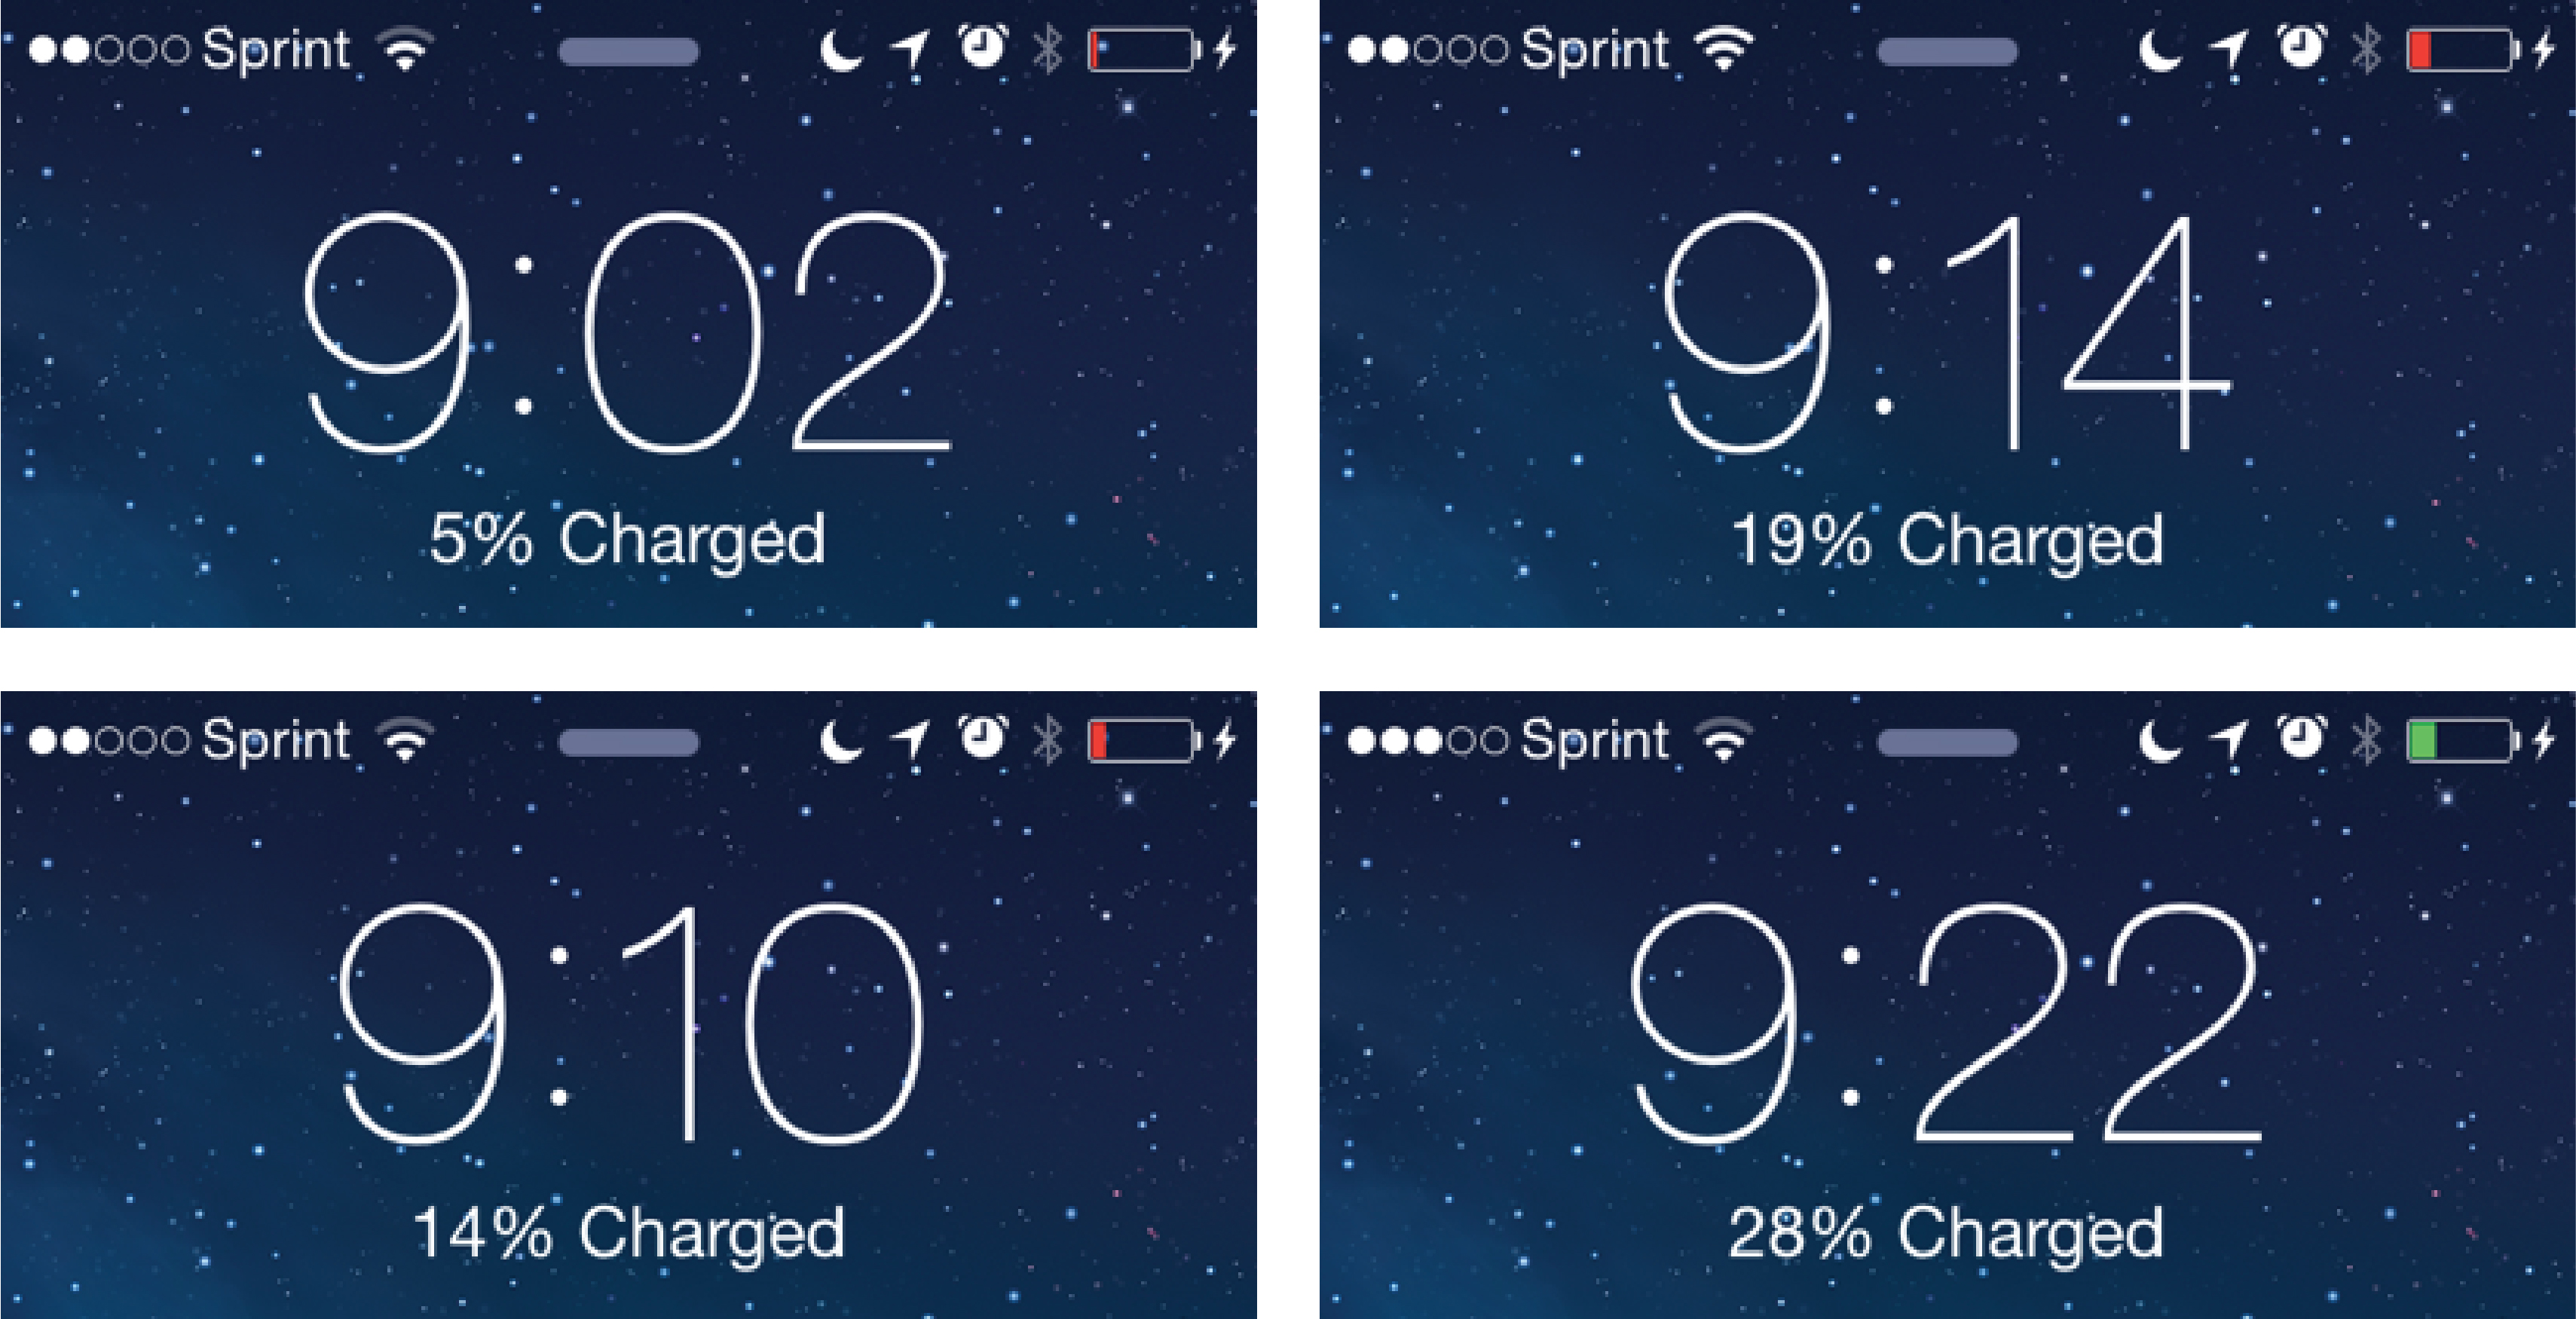 Four screenshots, each showing a timestamp and charge percentage. At 9:02, 5% charged. At 9:10, 14% charged. At 9:14, 19% charged. At 9:22, 28% charged.